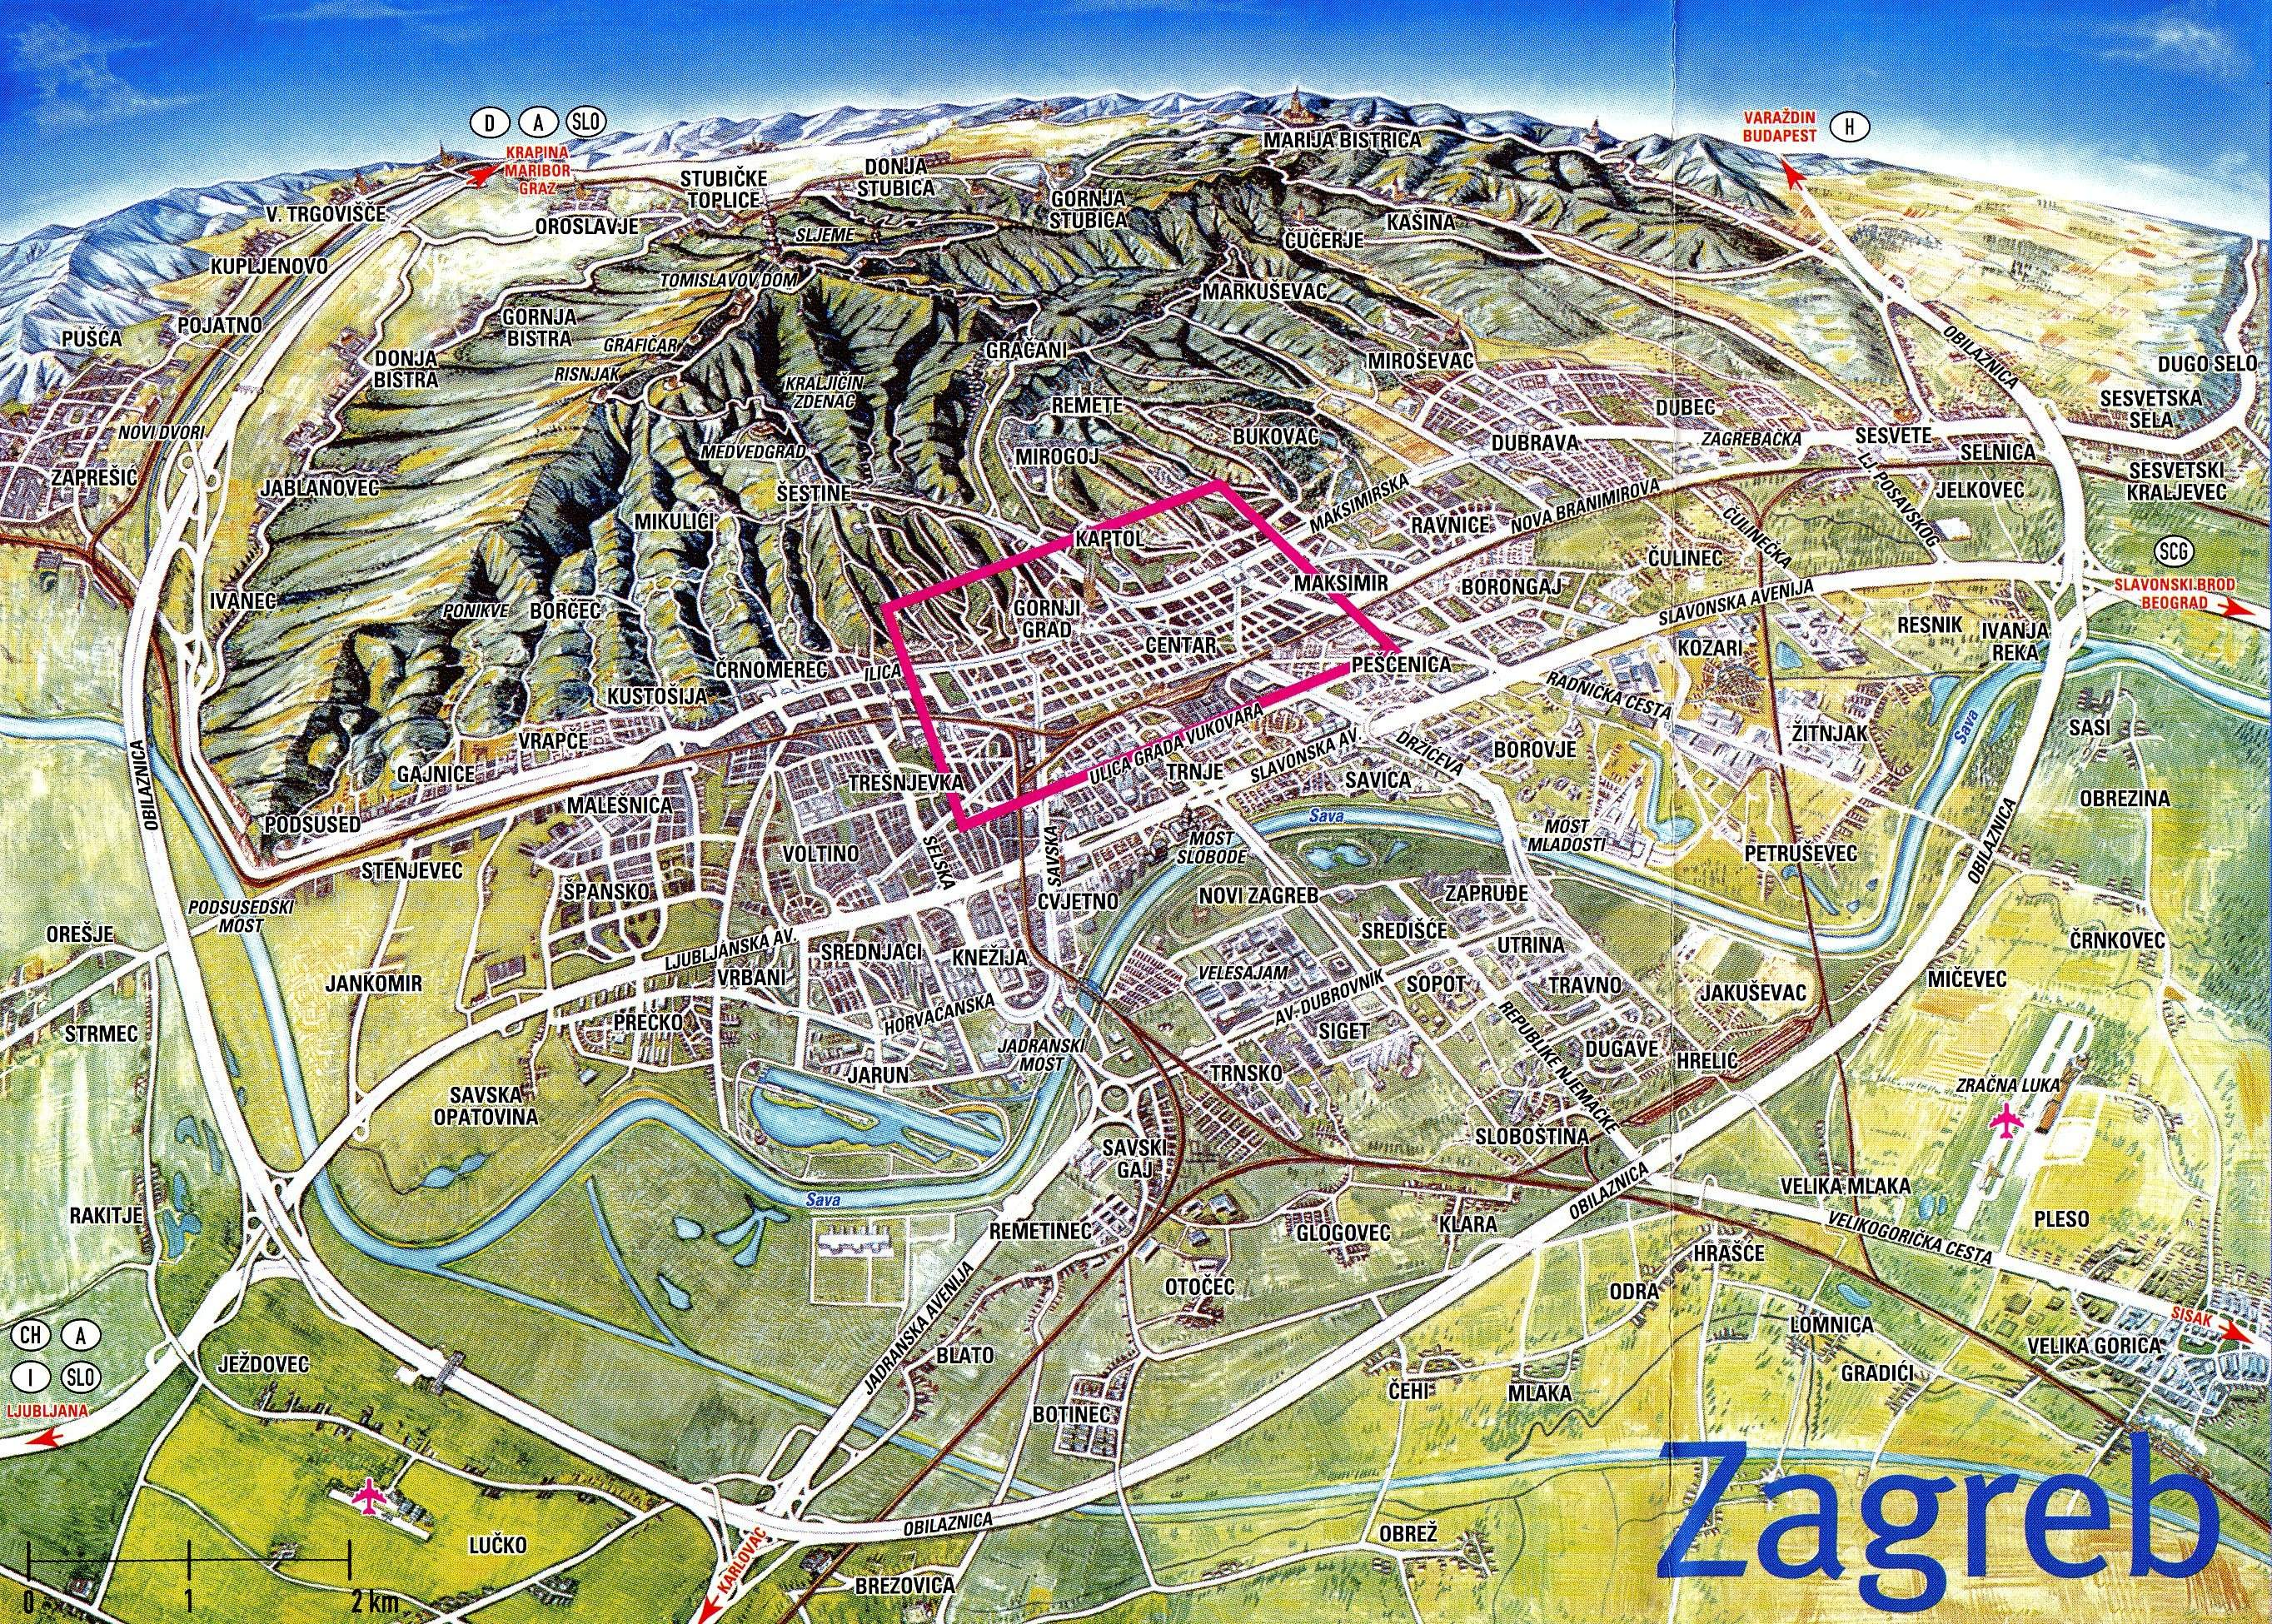 Map of Zagreb, Croatia